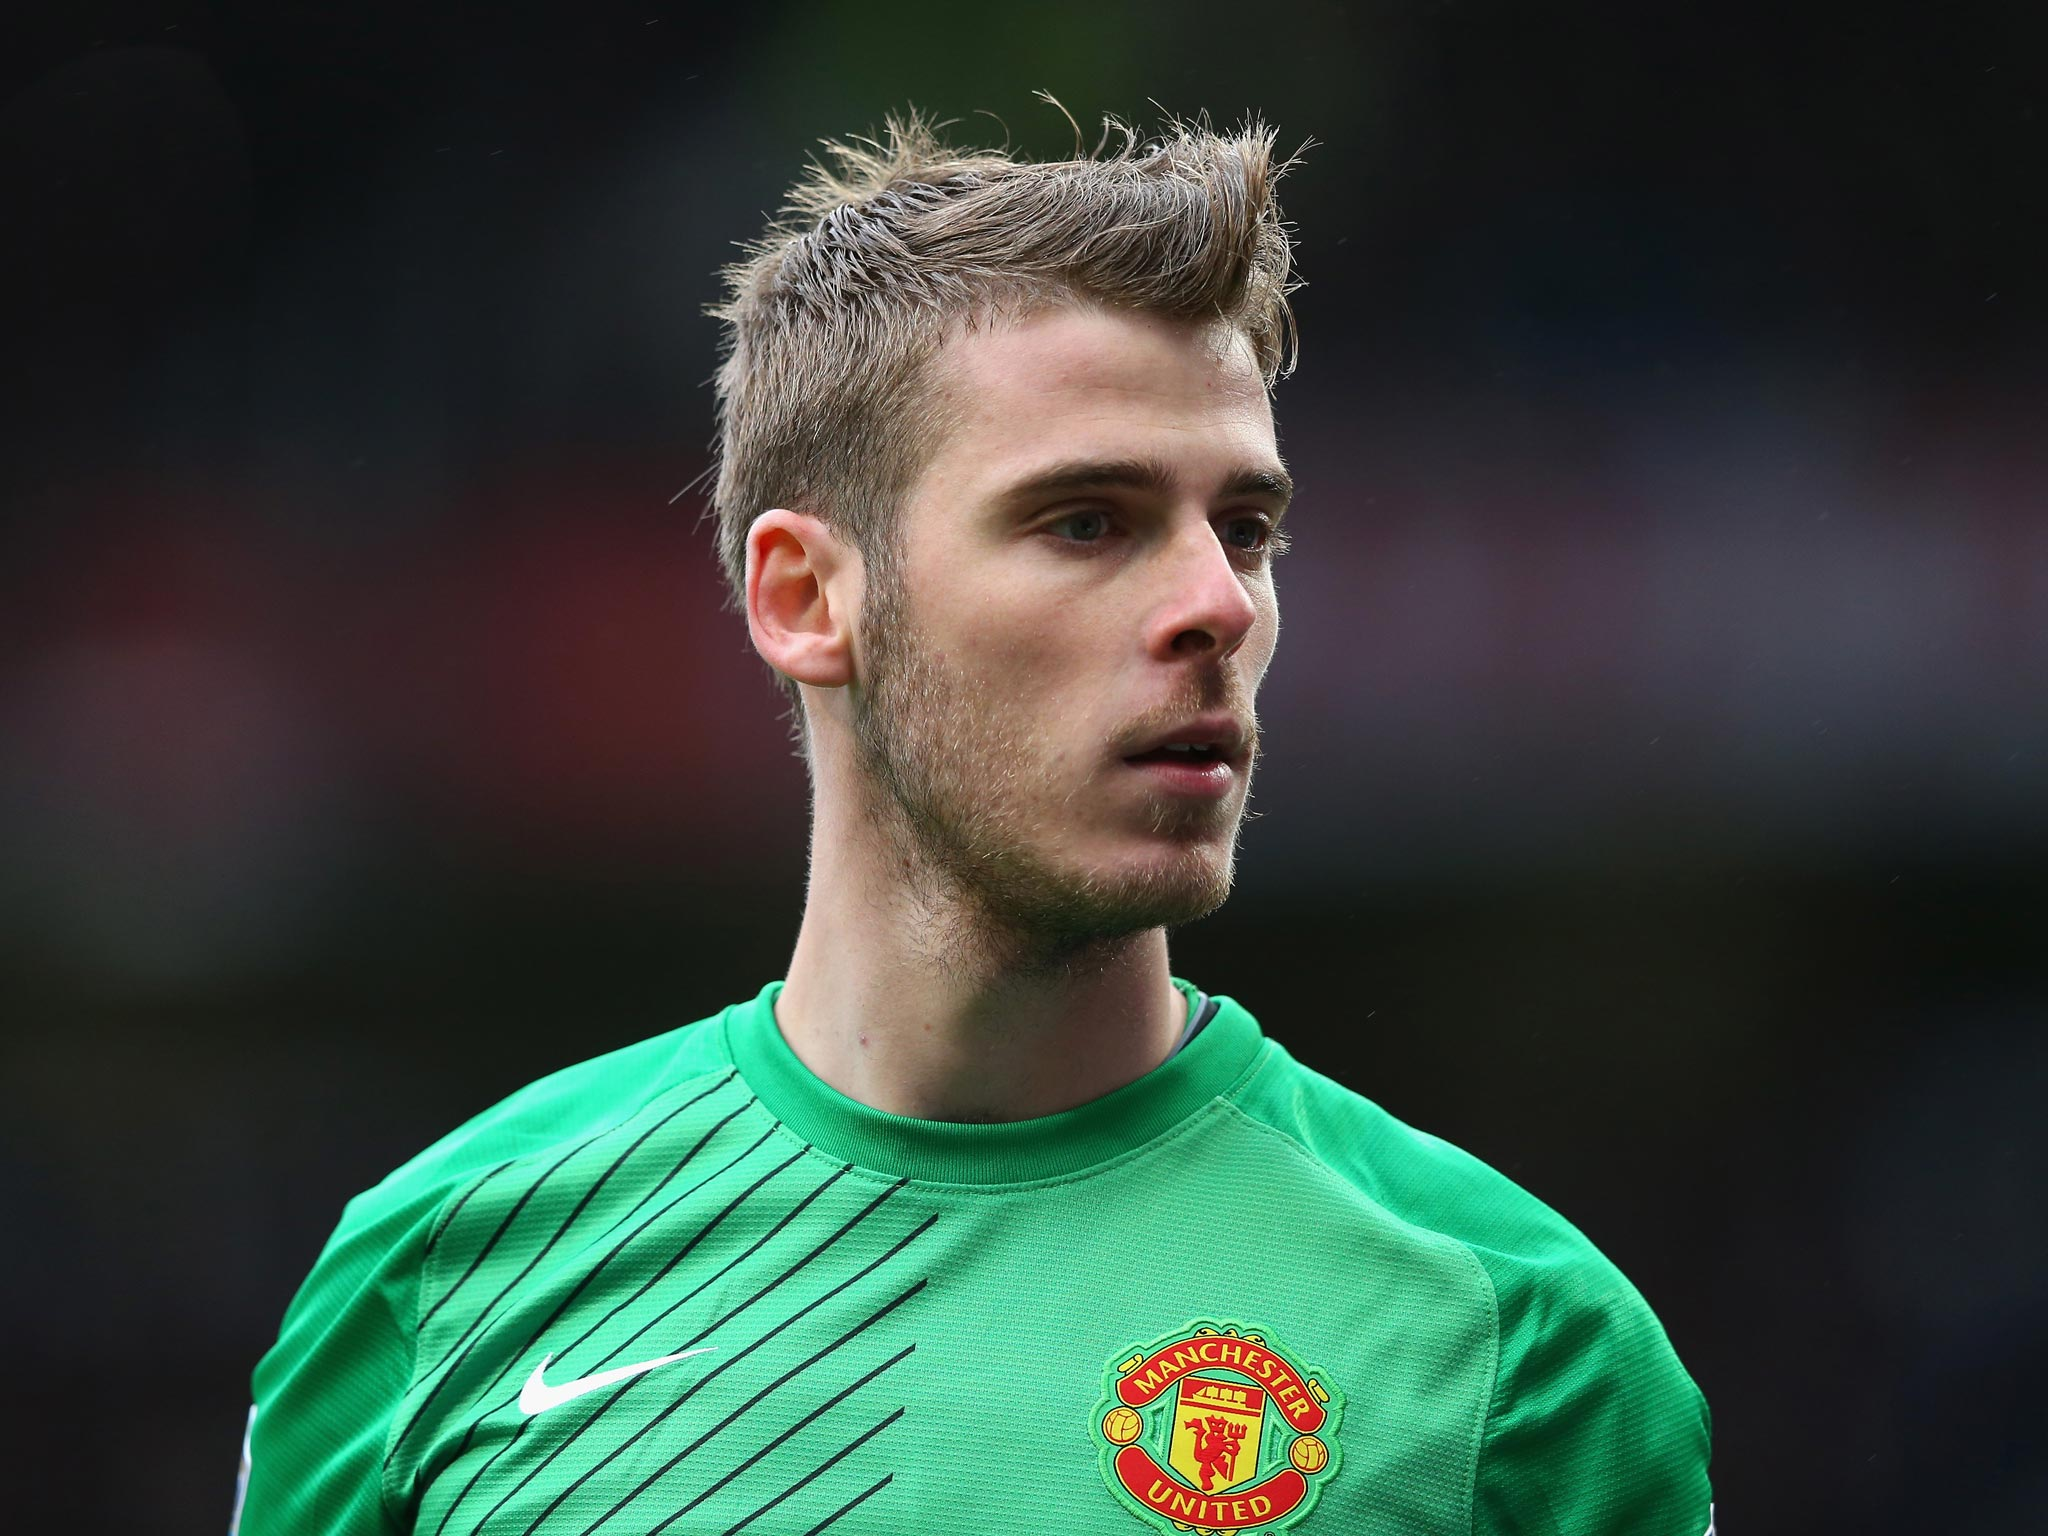 David De Gea earned a  million dollar salary, leaving the net worth at 17 million in 2017